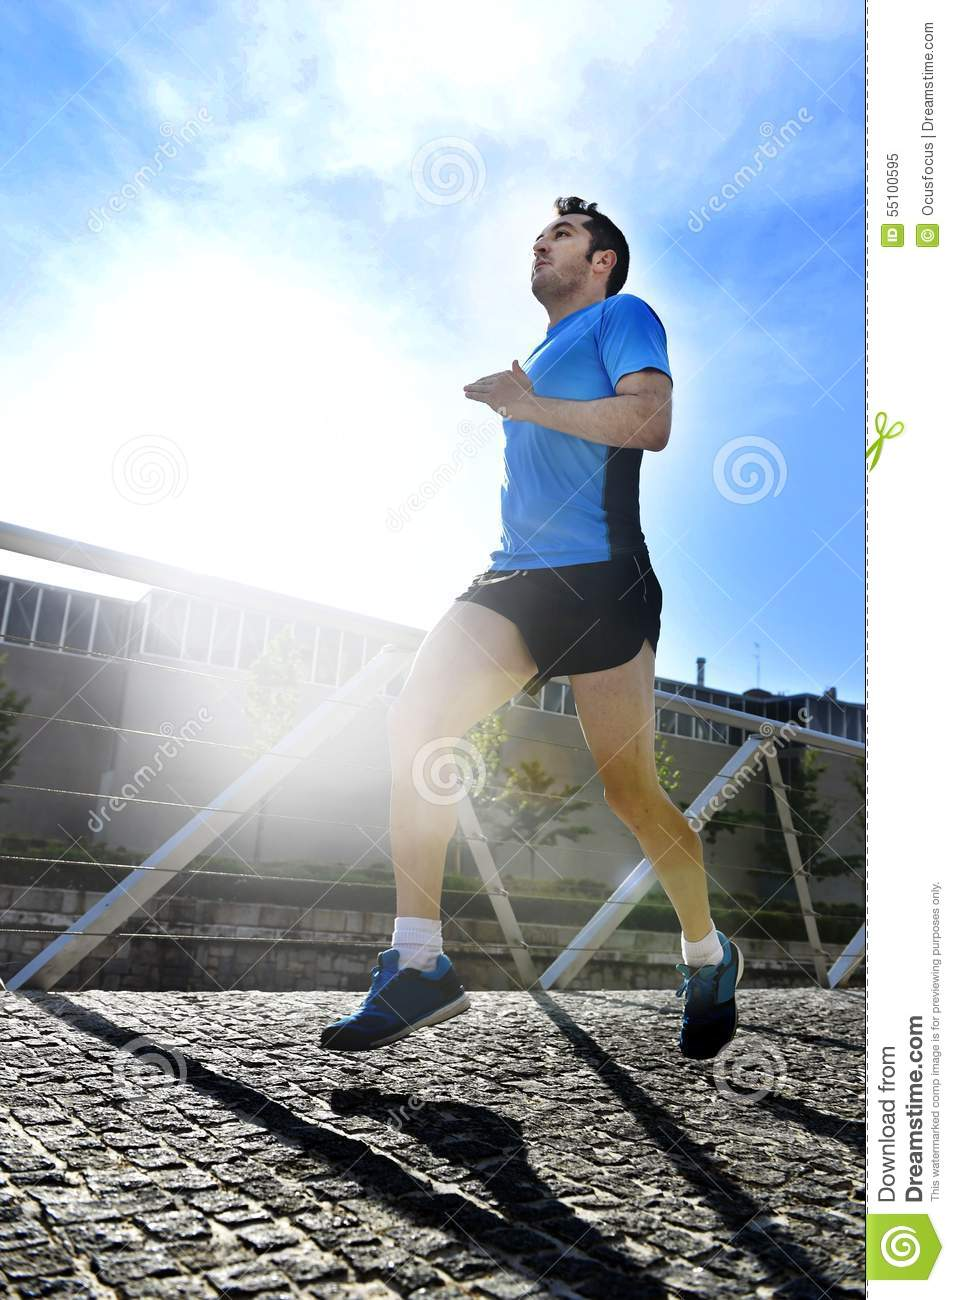 Young athletic man practicing running in urban background backlight in fitness sport training and healthy lifestyle concept